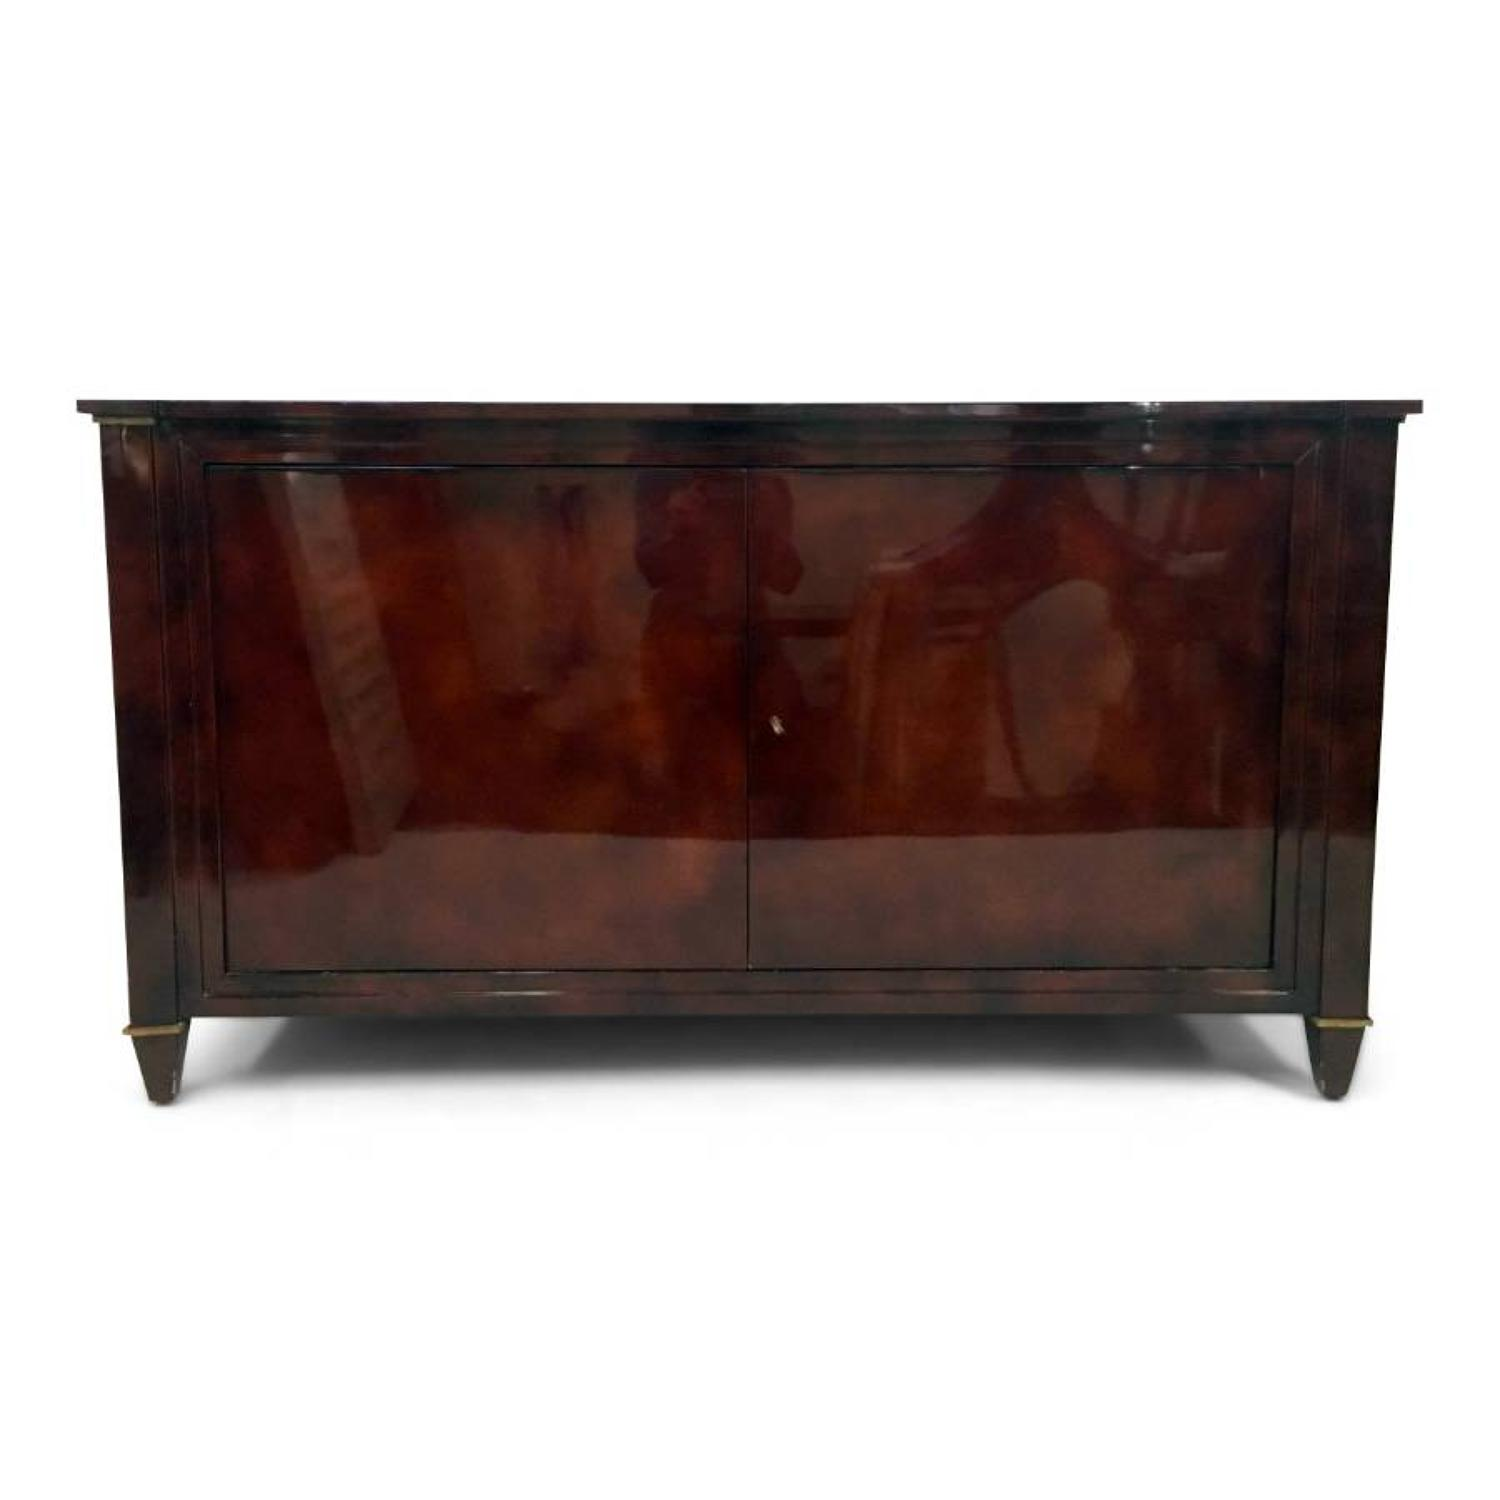 Red lacquered sideboard by Maison Ramsay